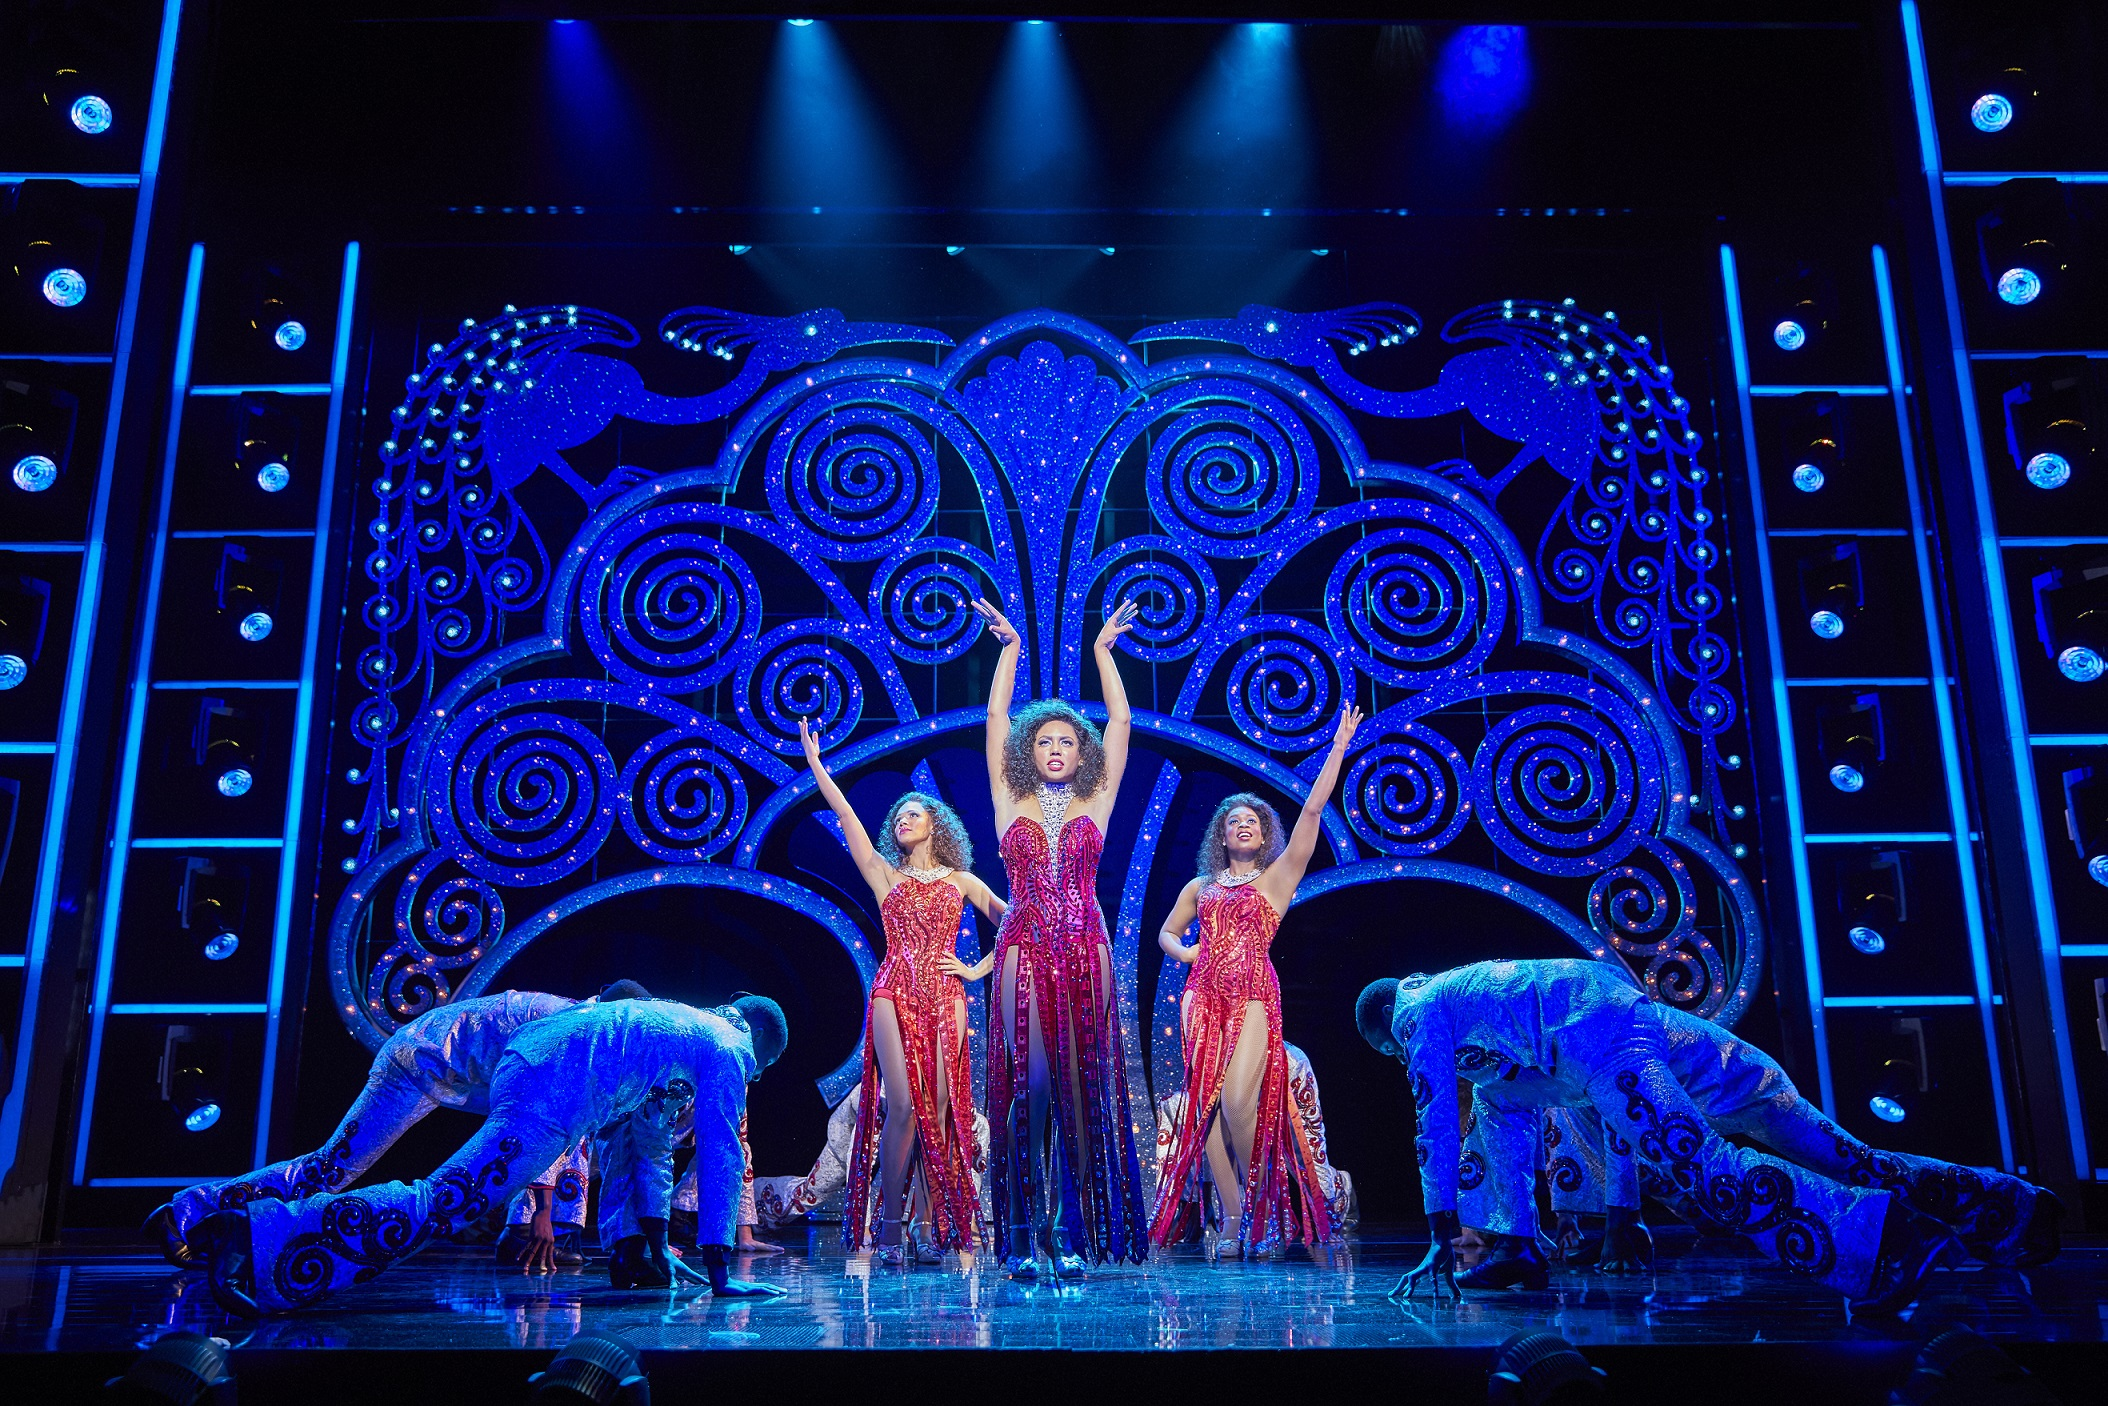 (l-r) Lily Frazer, Liisi LaFontaine and Ibinabo Jack in Dreamgirls at the Savoy Theatre. Credit Brinkhoff & Mögenburg (2).jpg